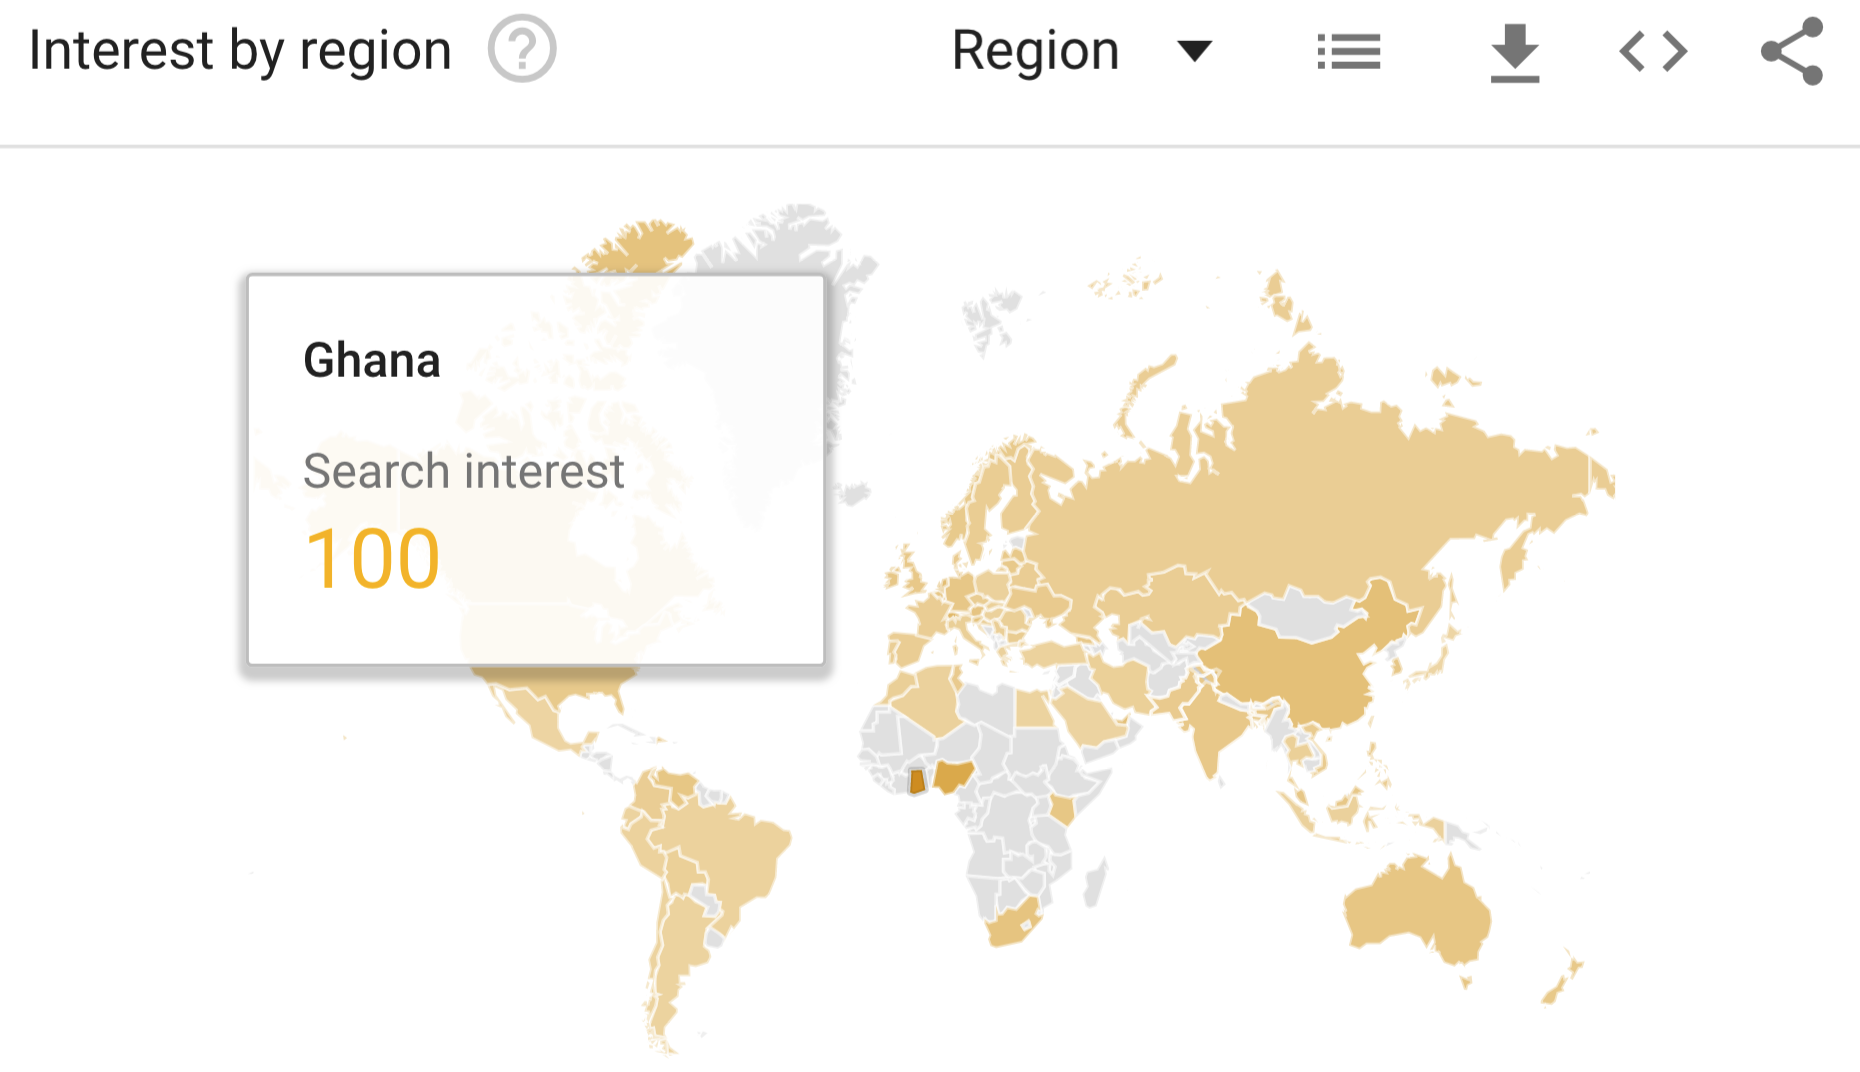 Source: How to get data from Google Trends for charts or maps